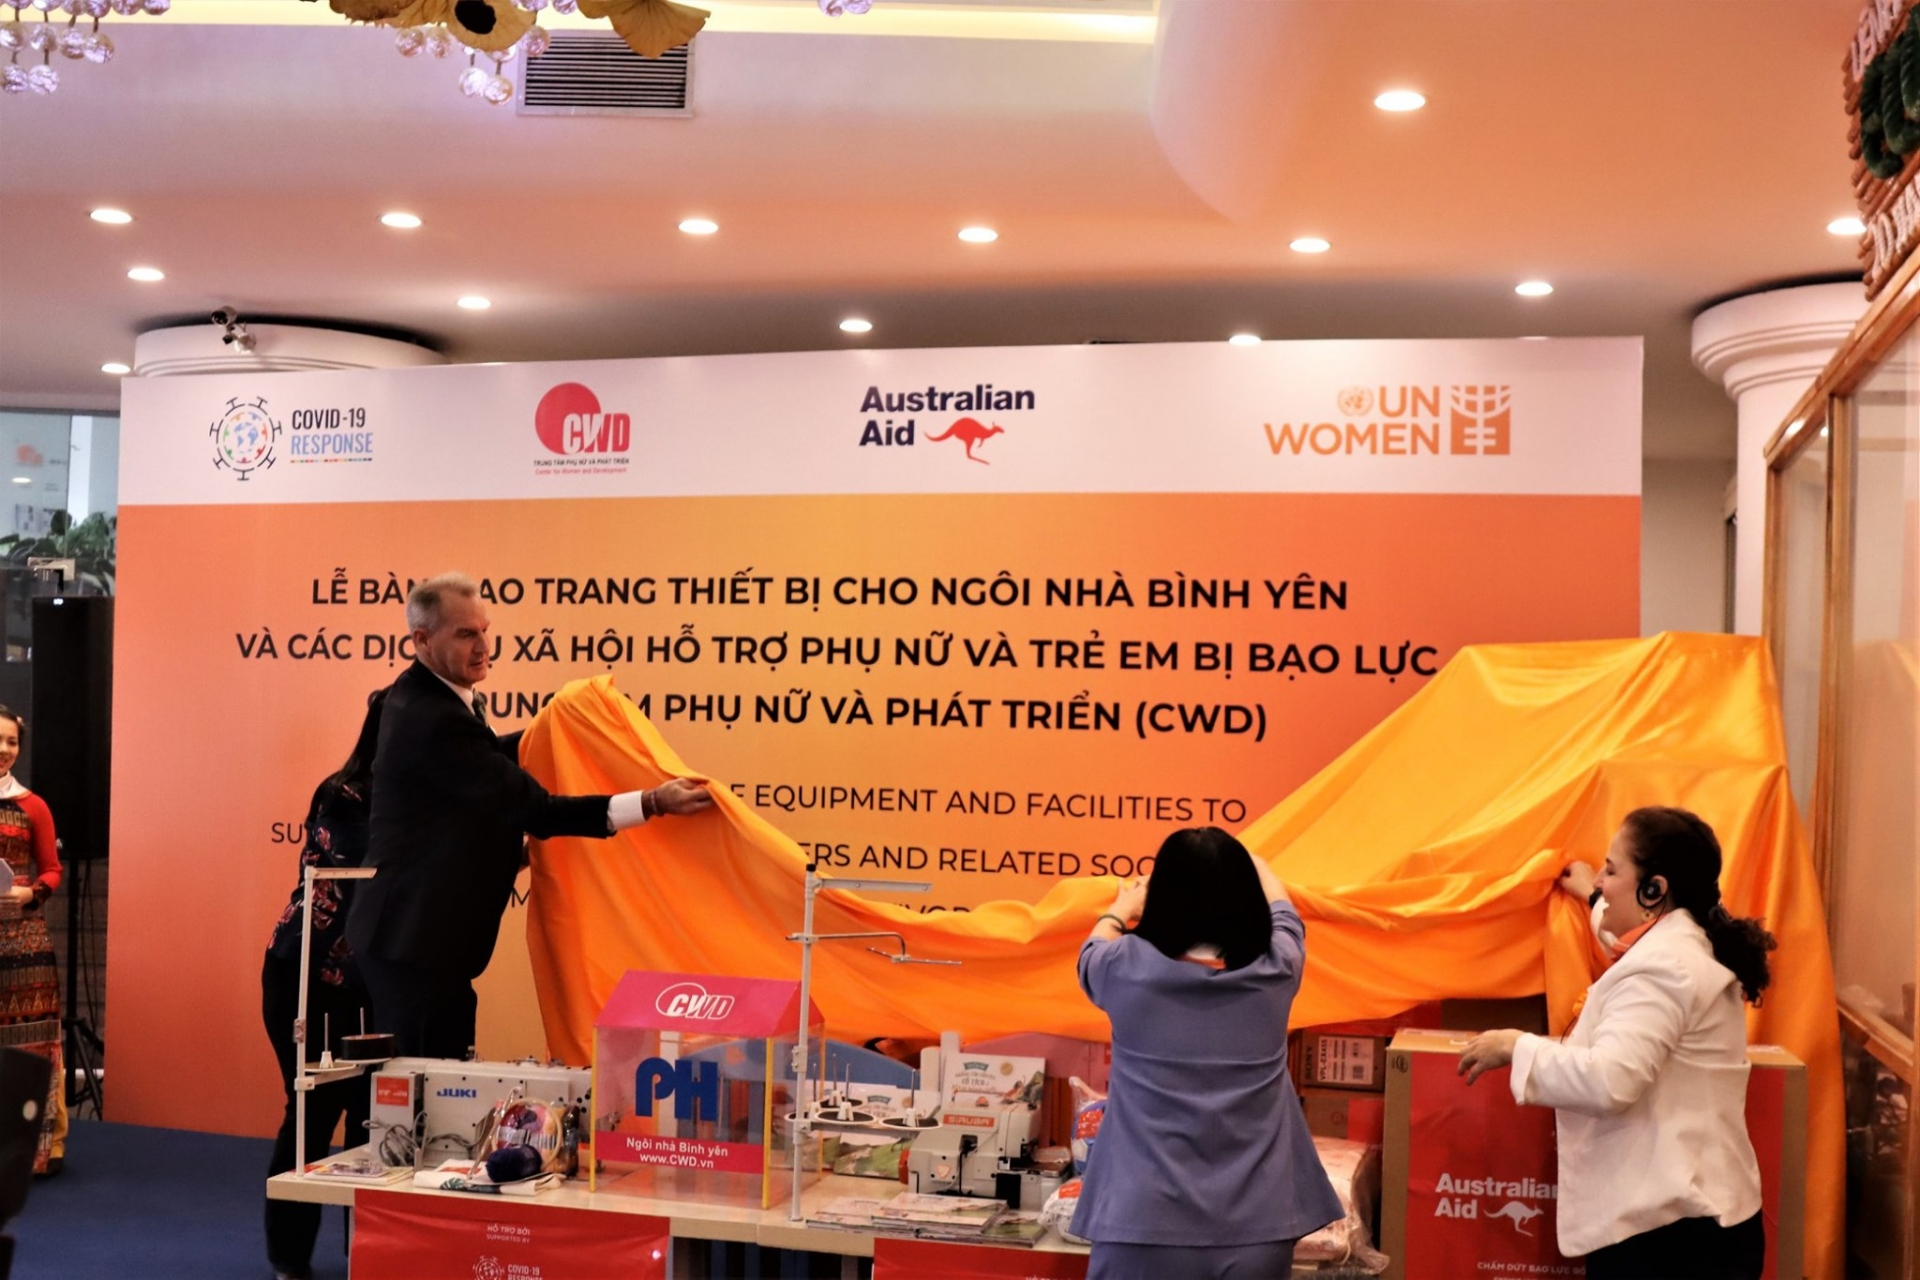 Australia, UN Women help upgrade services assisting violence victims in Vietnam